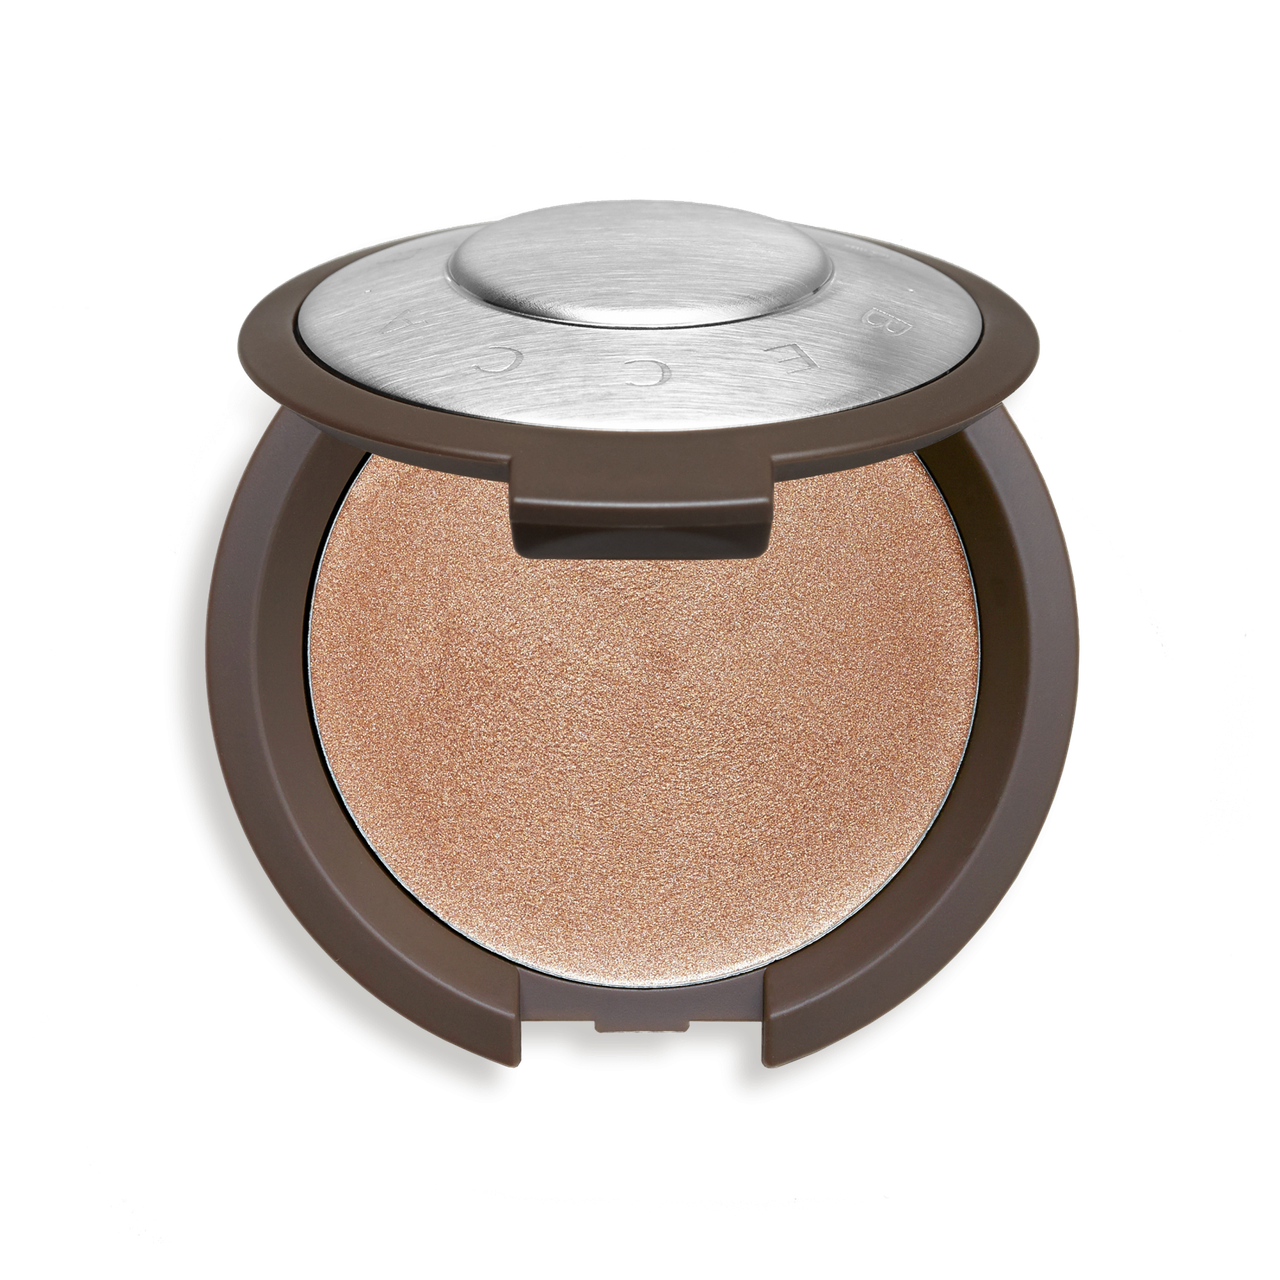 BECCA Shimmering Skin Perfector Pressed Opal